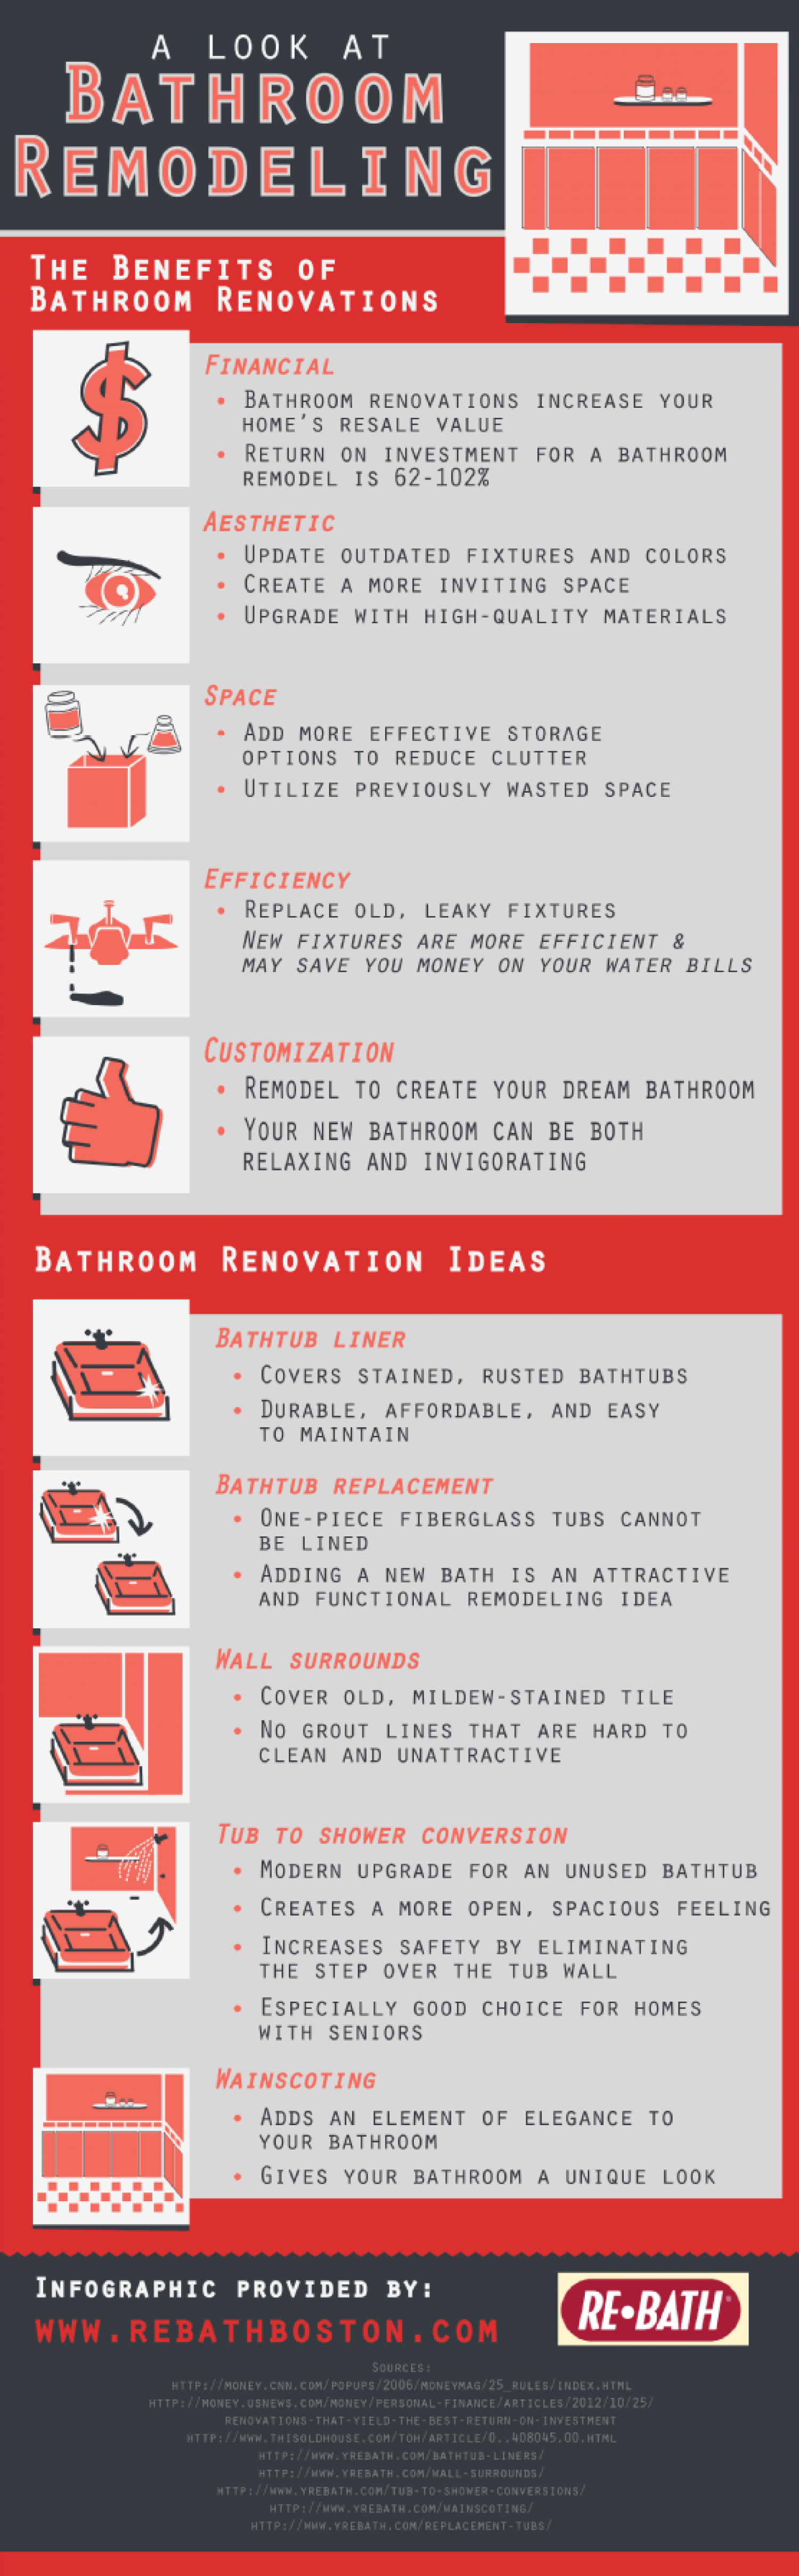 A Look at Bathroom Remodeling Infographic